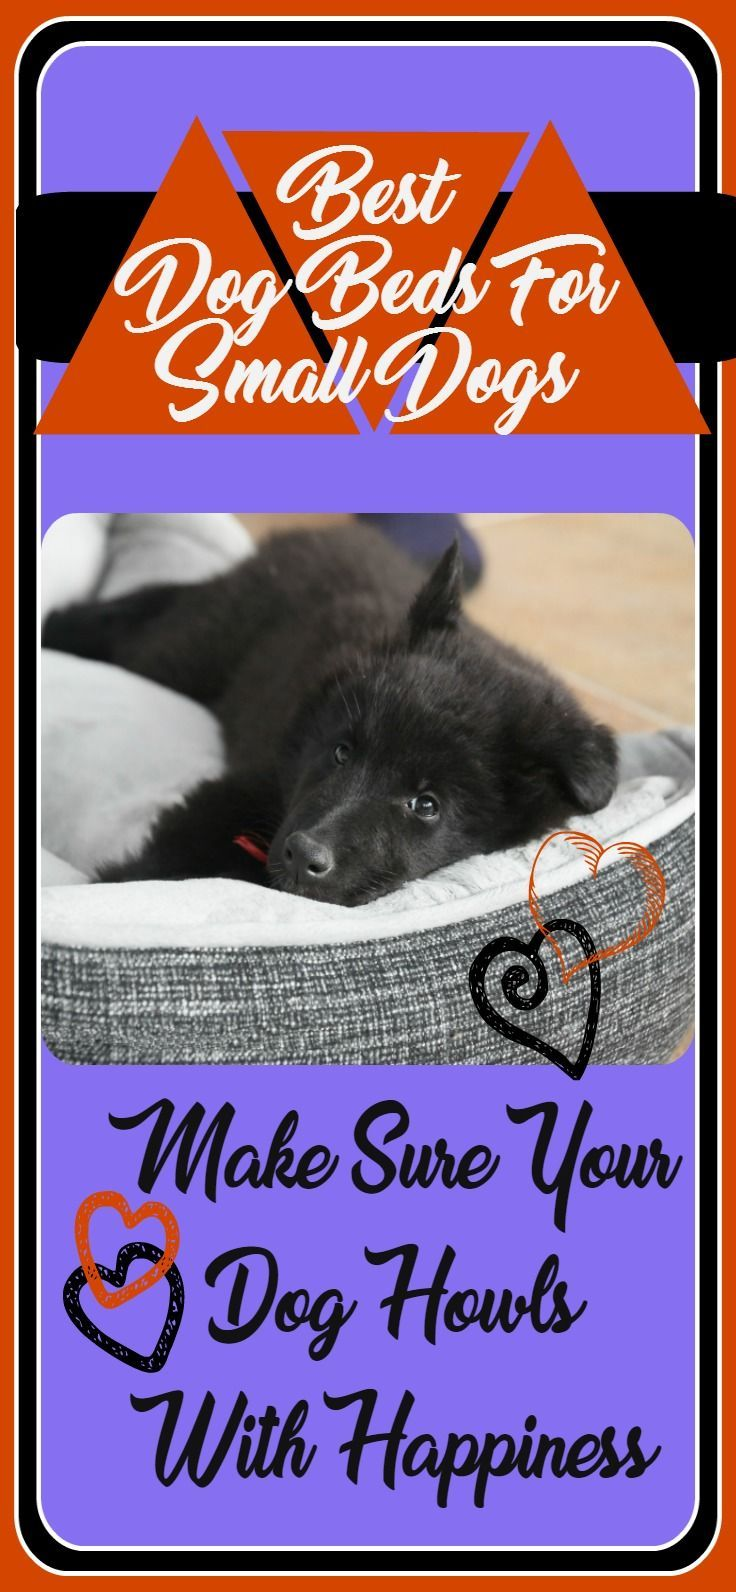 Best dog beds for small dogs are the ones that make you and your best friend happy. Small dogs fill a whole heart with love, they deserve comfort, warmth and protection. And when they begin to age they may have some issues that a good bed will help with. Choose from several great beds for your small dog.